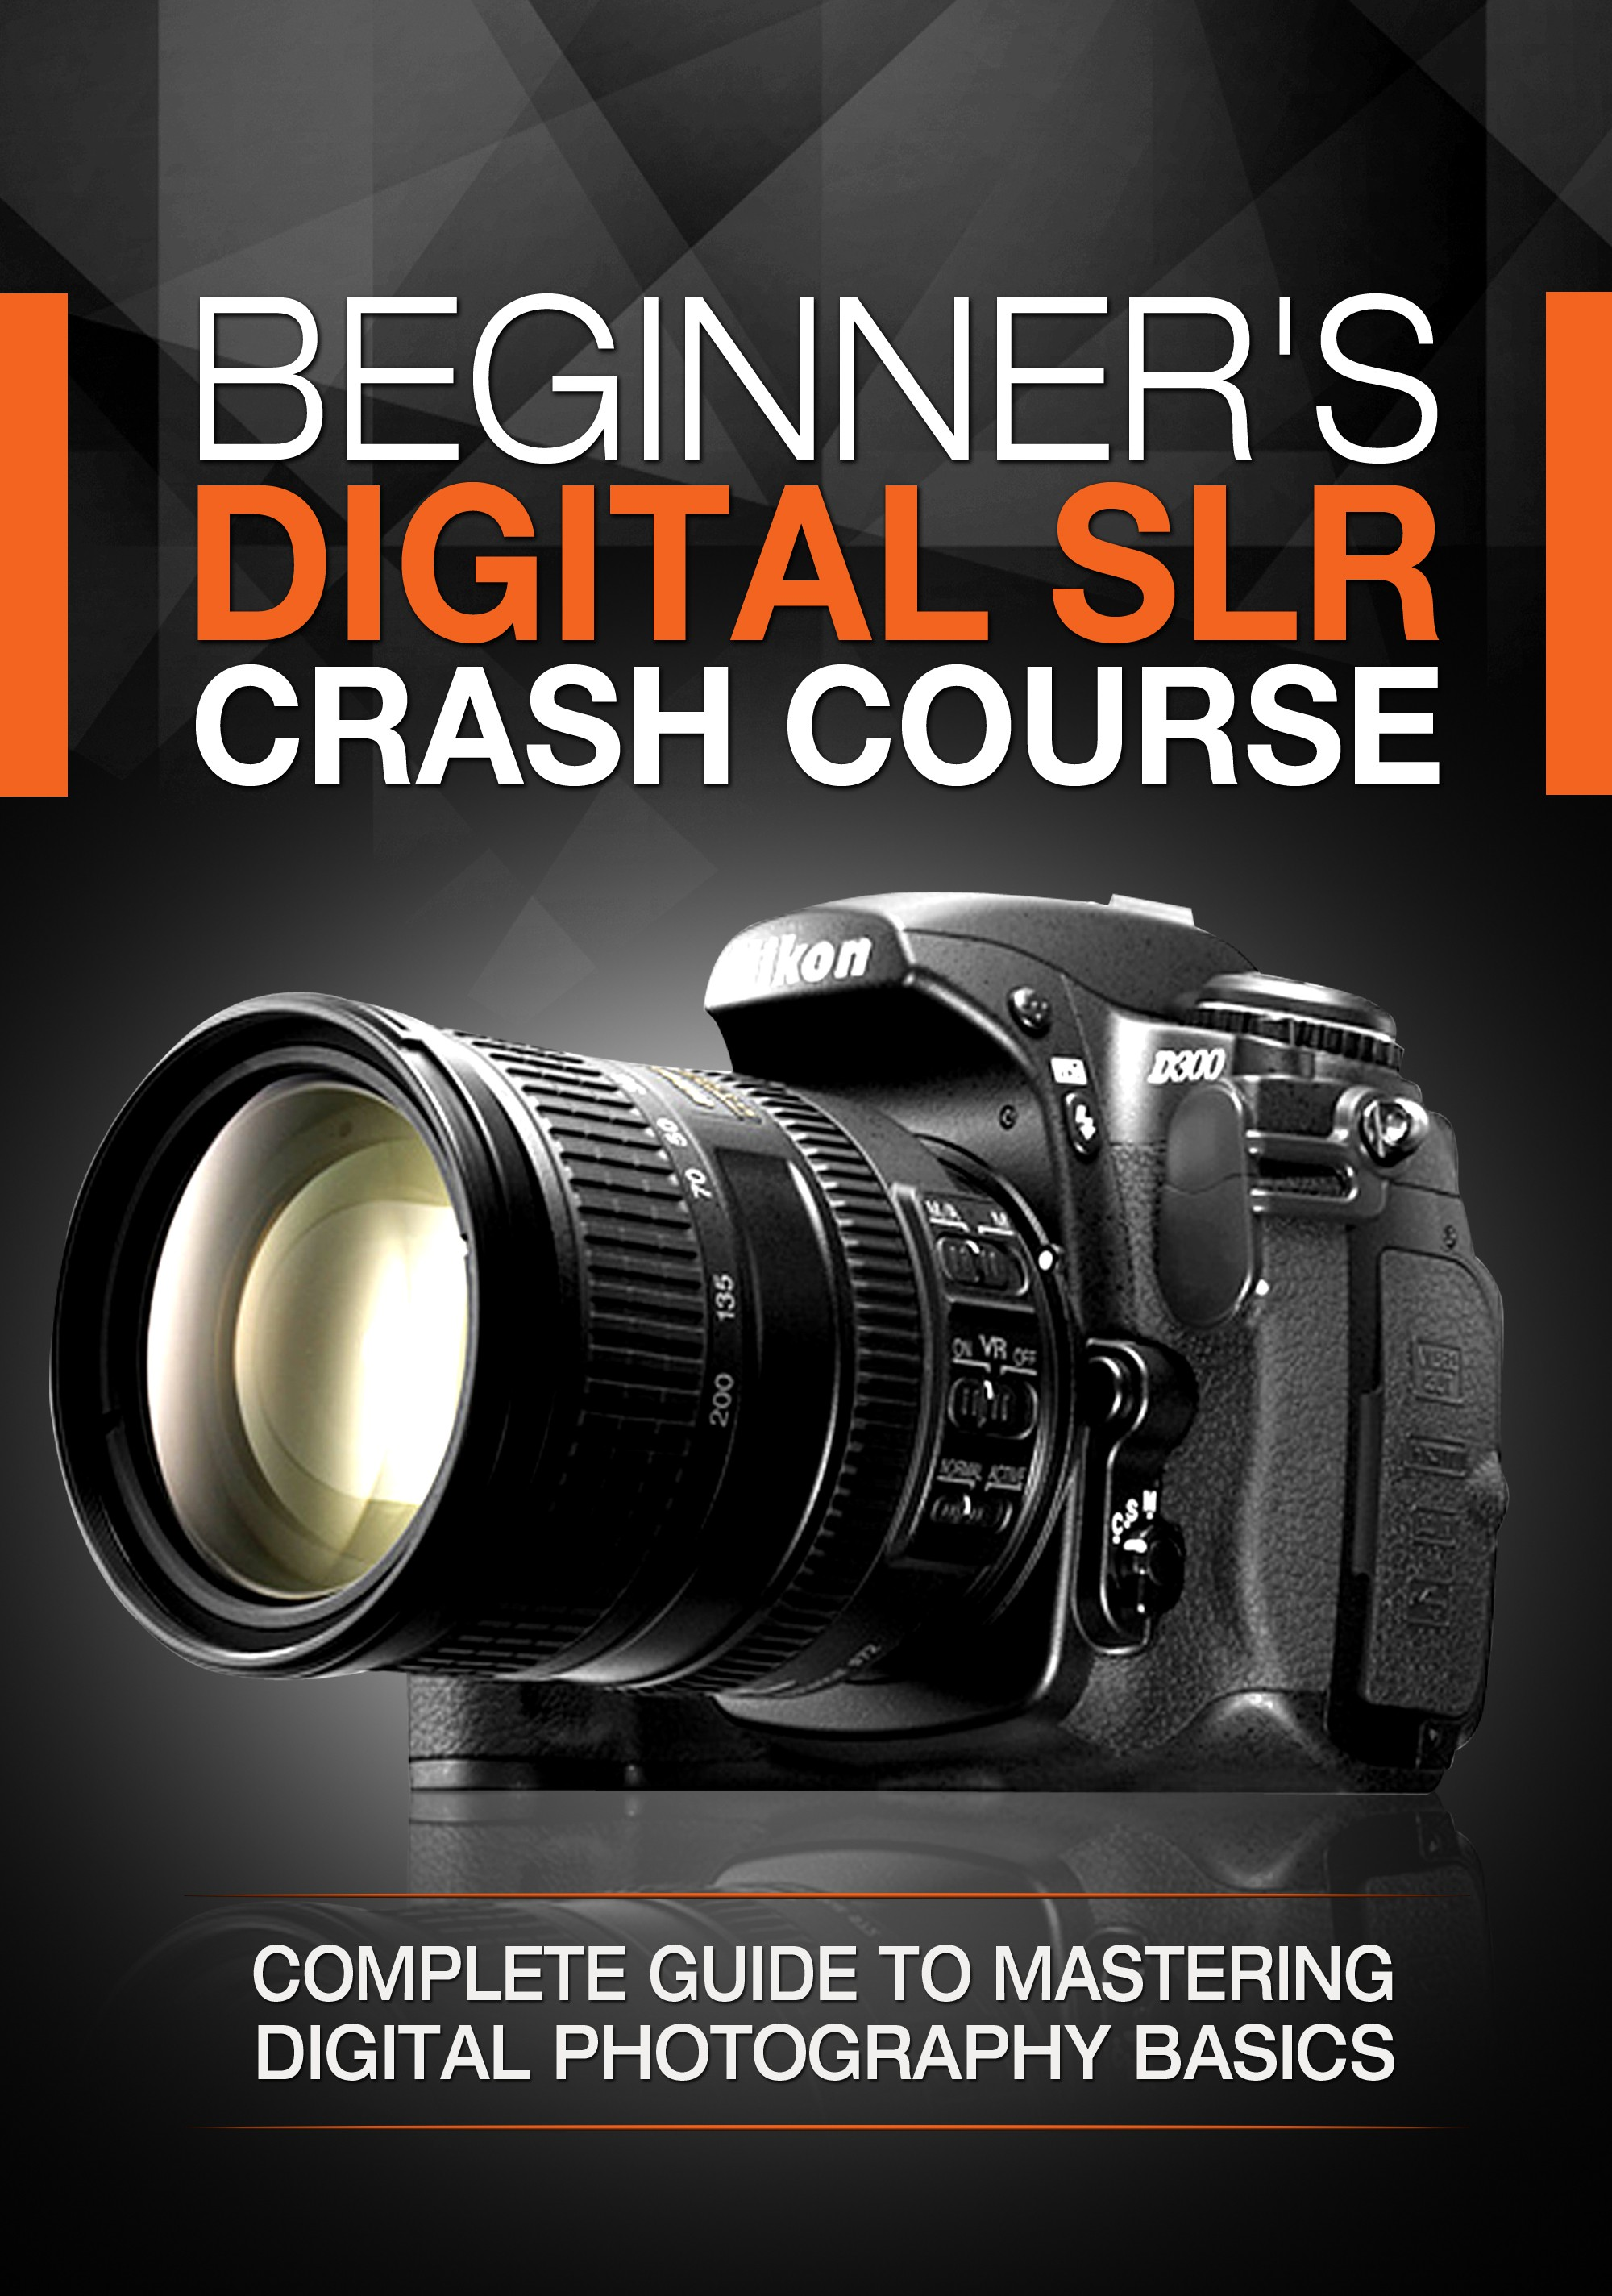 Create an eBook Cover for Bestselling Photography Book